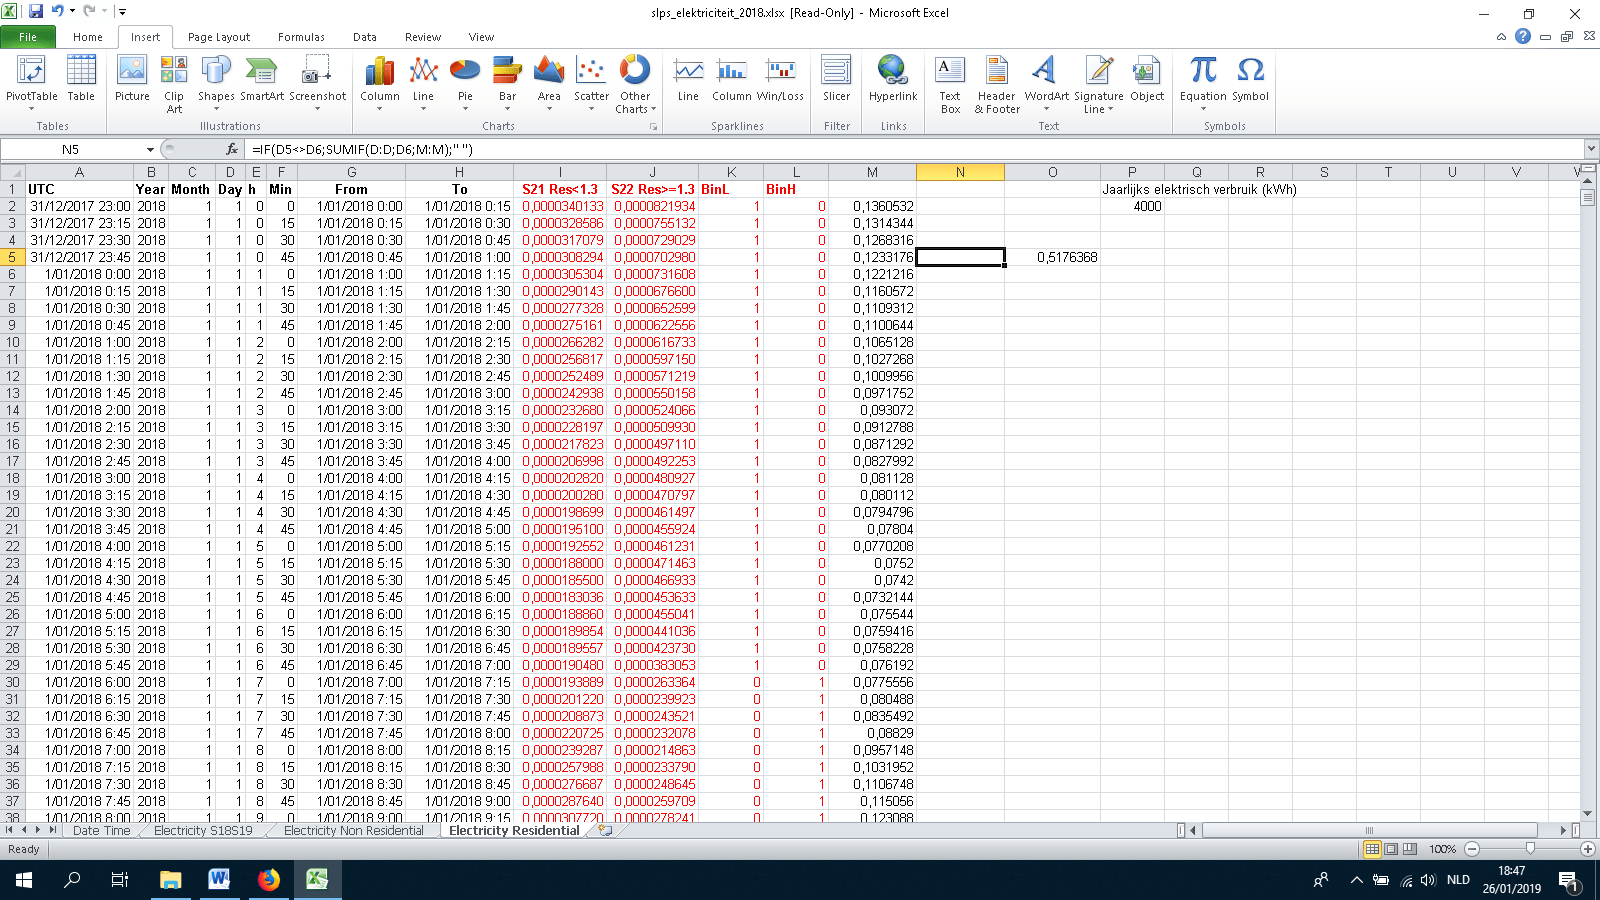 How To Calculate The Sum Of Values For One Day In Excel